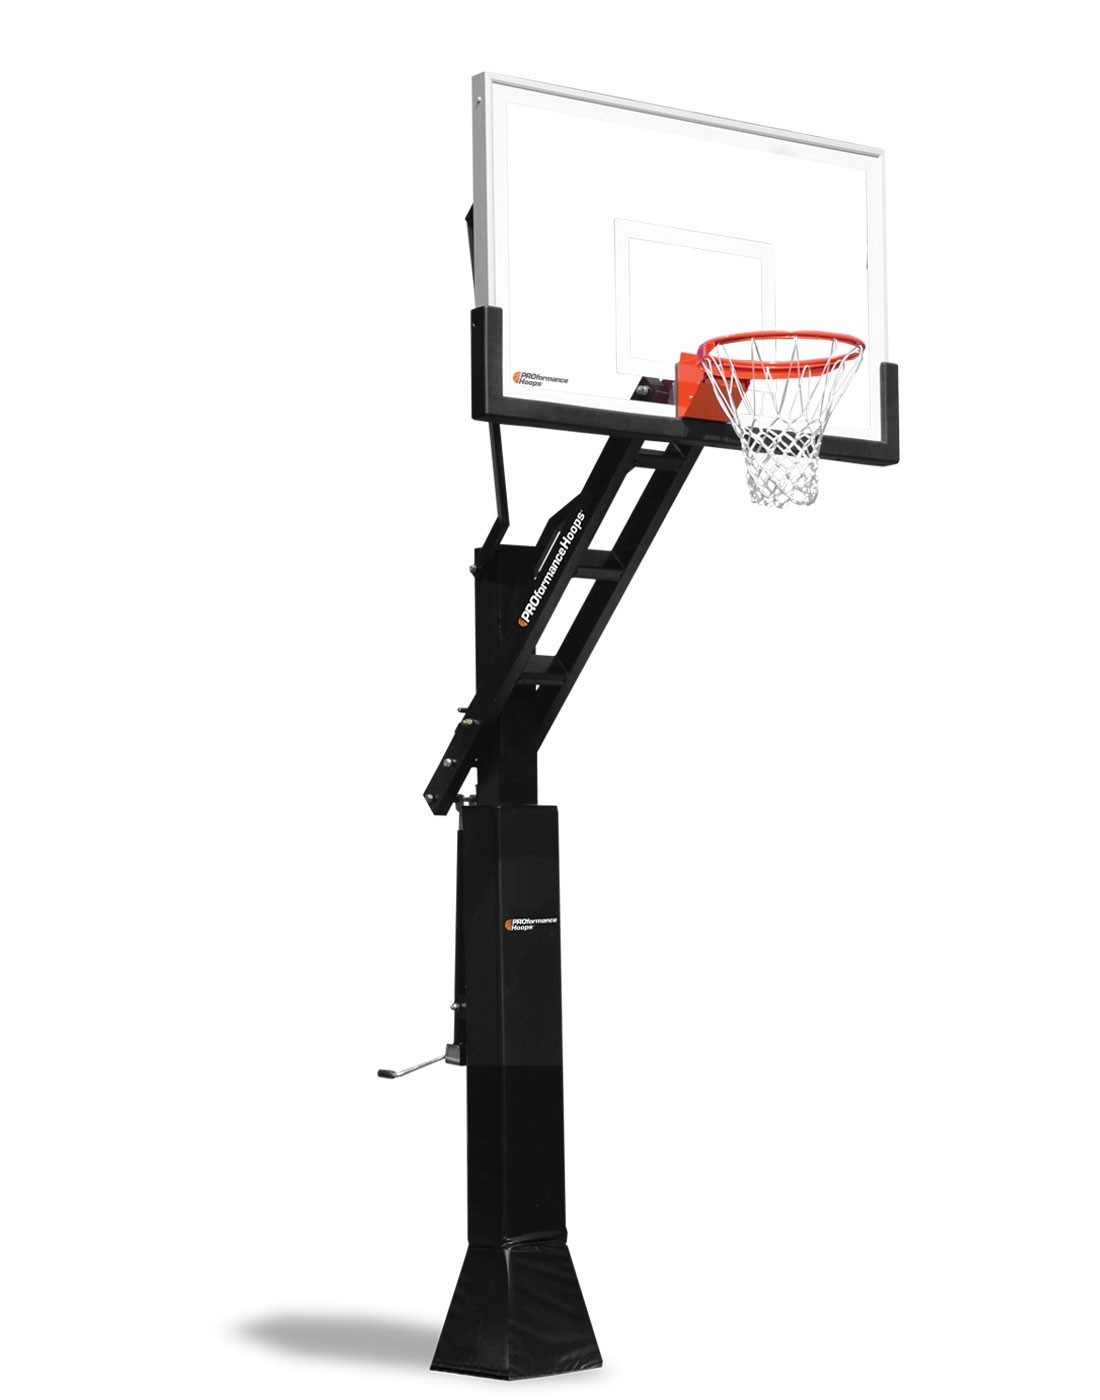 PROformance PROview 660 basketball hoop